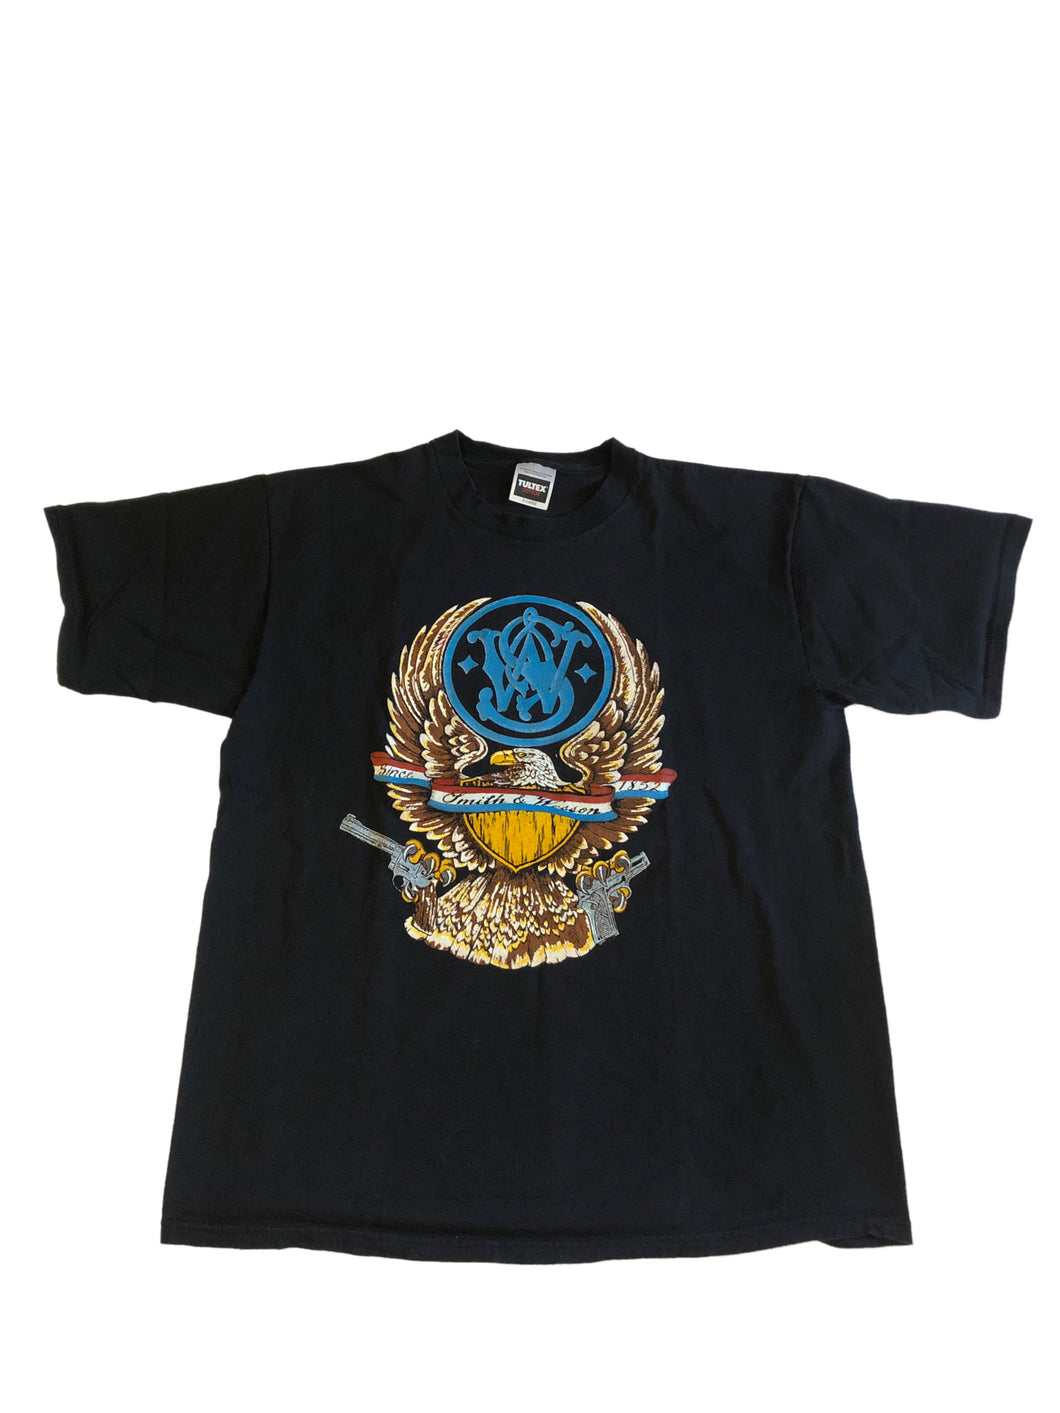 Smith and Wesson Tee